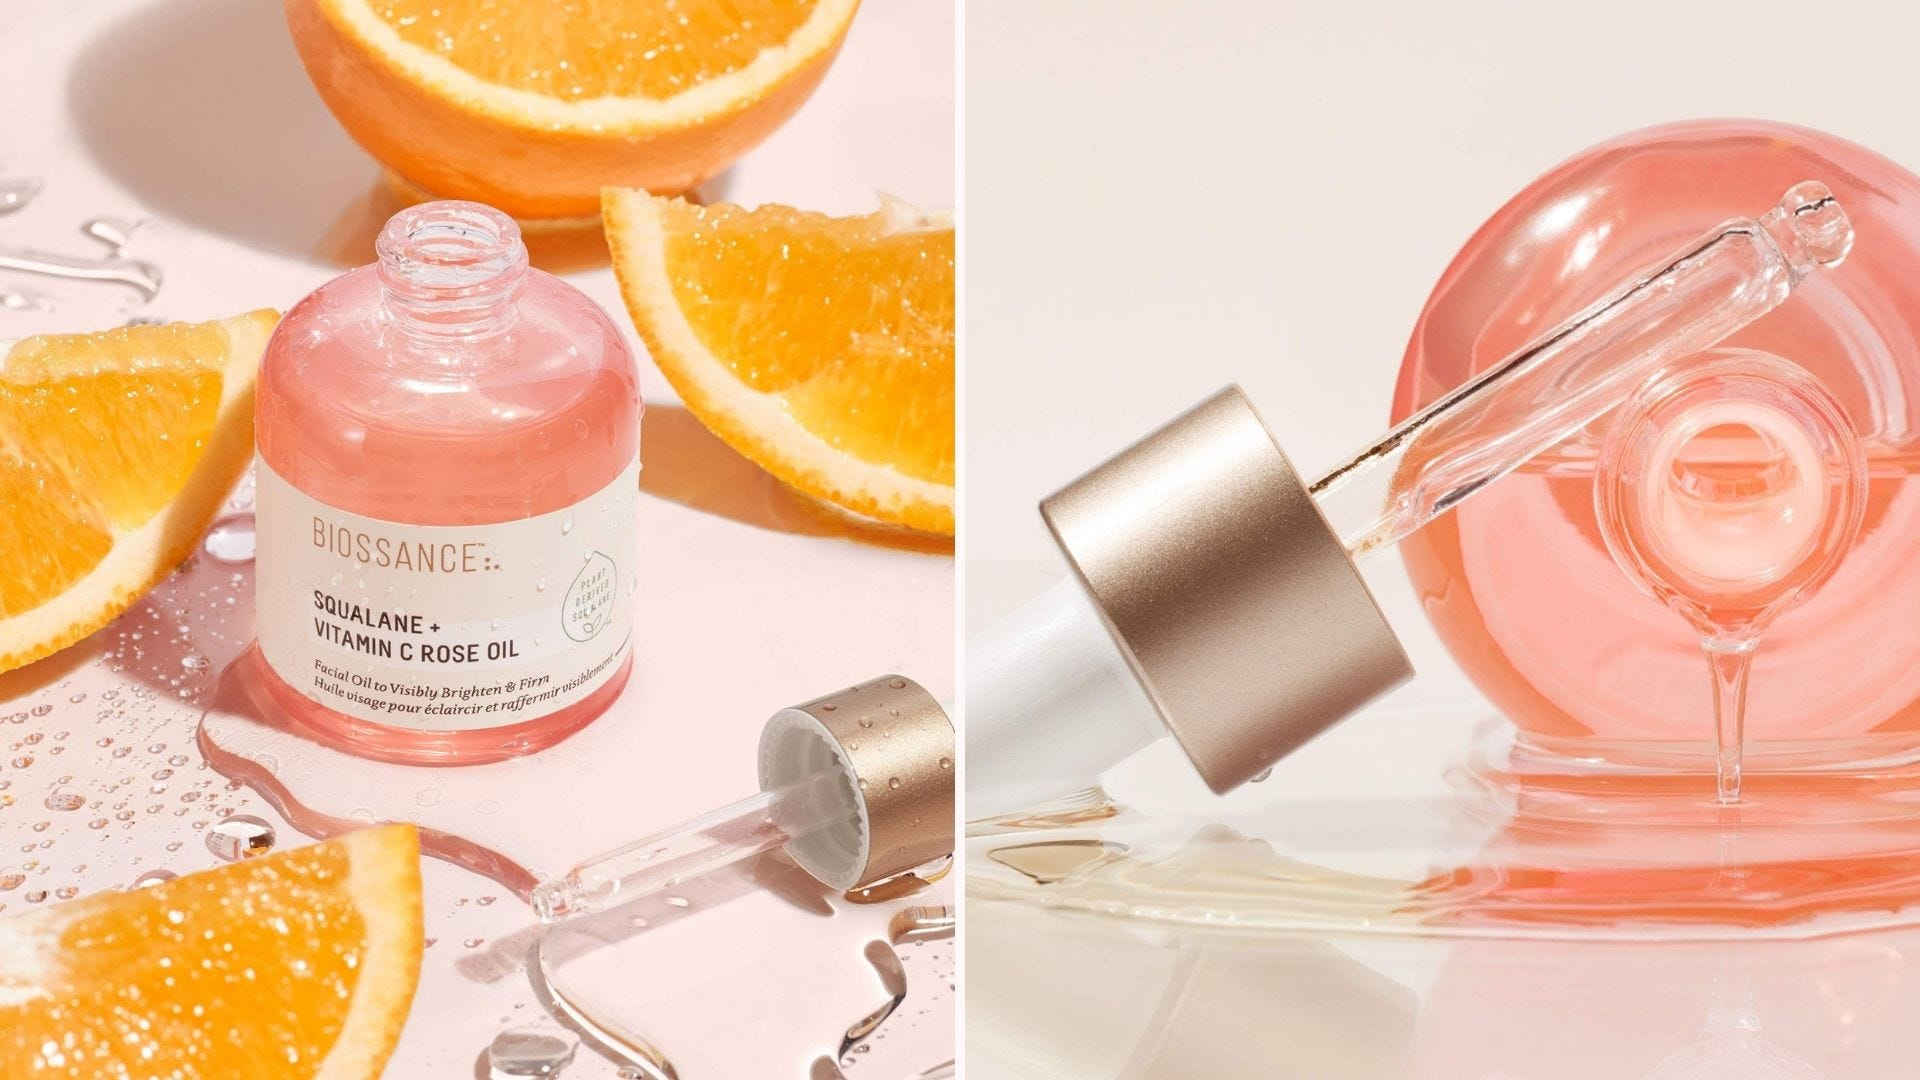 A pink bottle of facial oil sitting among orange slices; the bottle on its side with oil flowing out